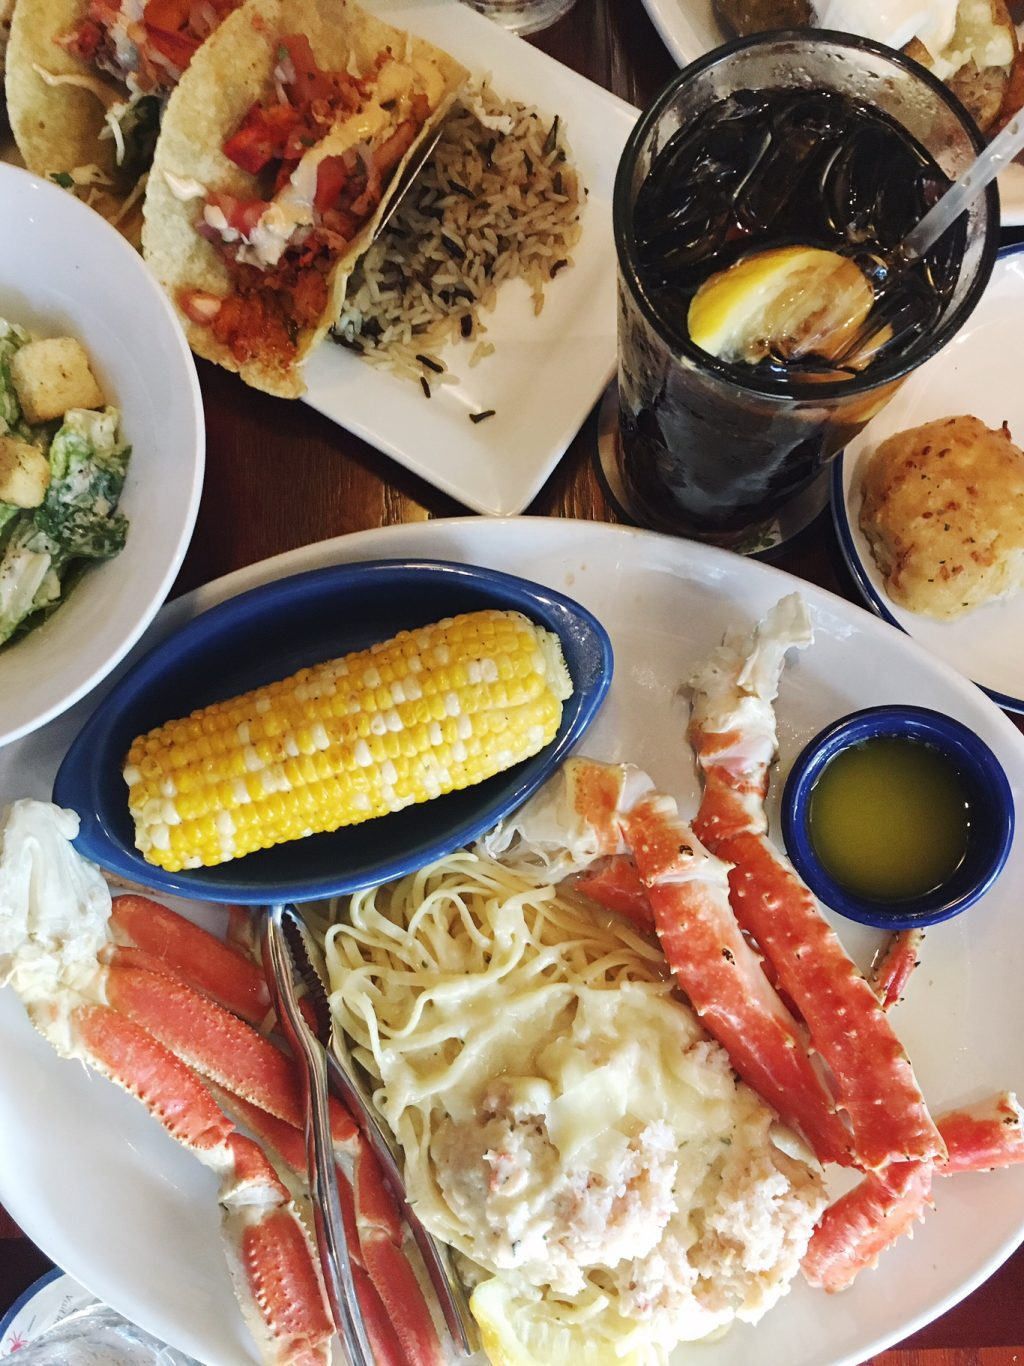 Staggering Nest Part About Experiencing Crabfest At Red Lobster Friendsaside From It Being Totally Delicious Is That Eating Crab Is So Hands Sponsored Crabfest At Red Life Girls nice food Crabfest Red Lobster